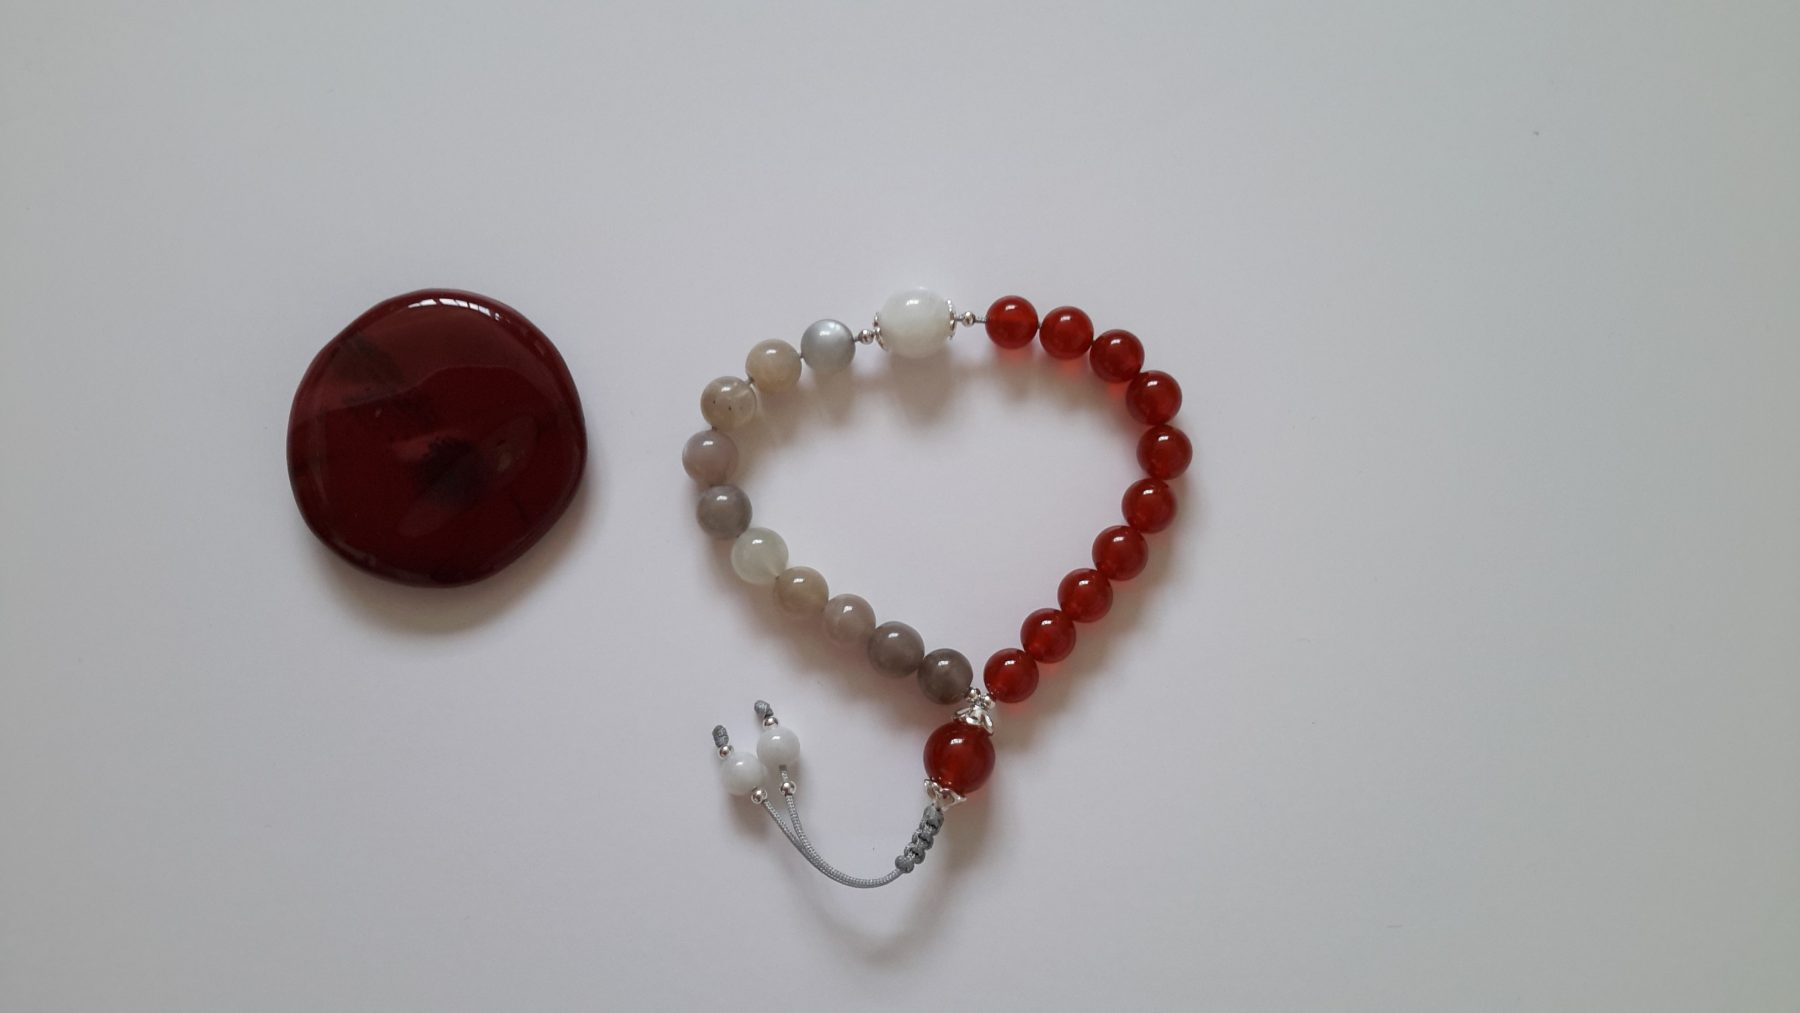 Creation Fertility Wrist Mala and Mookaite